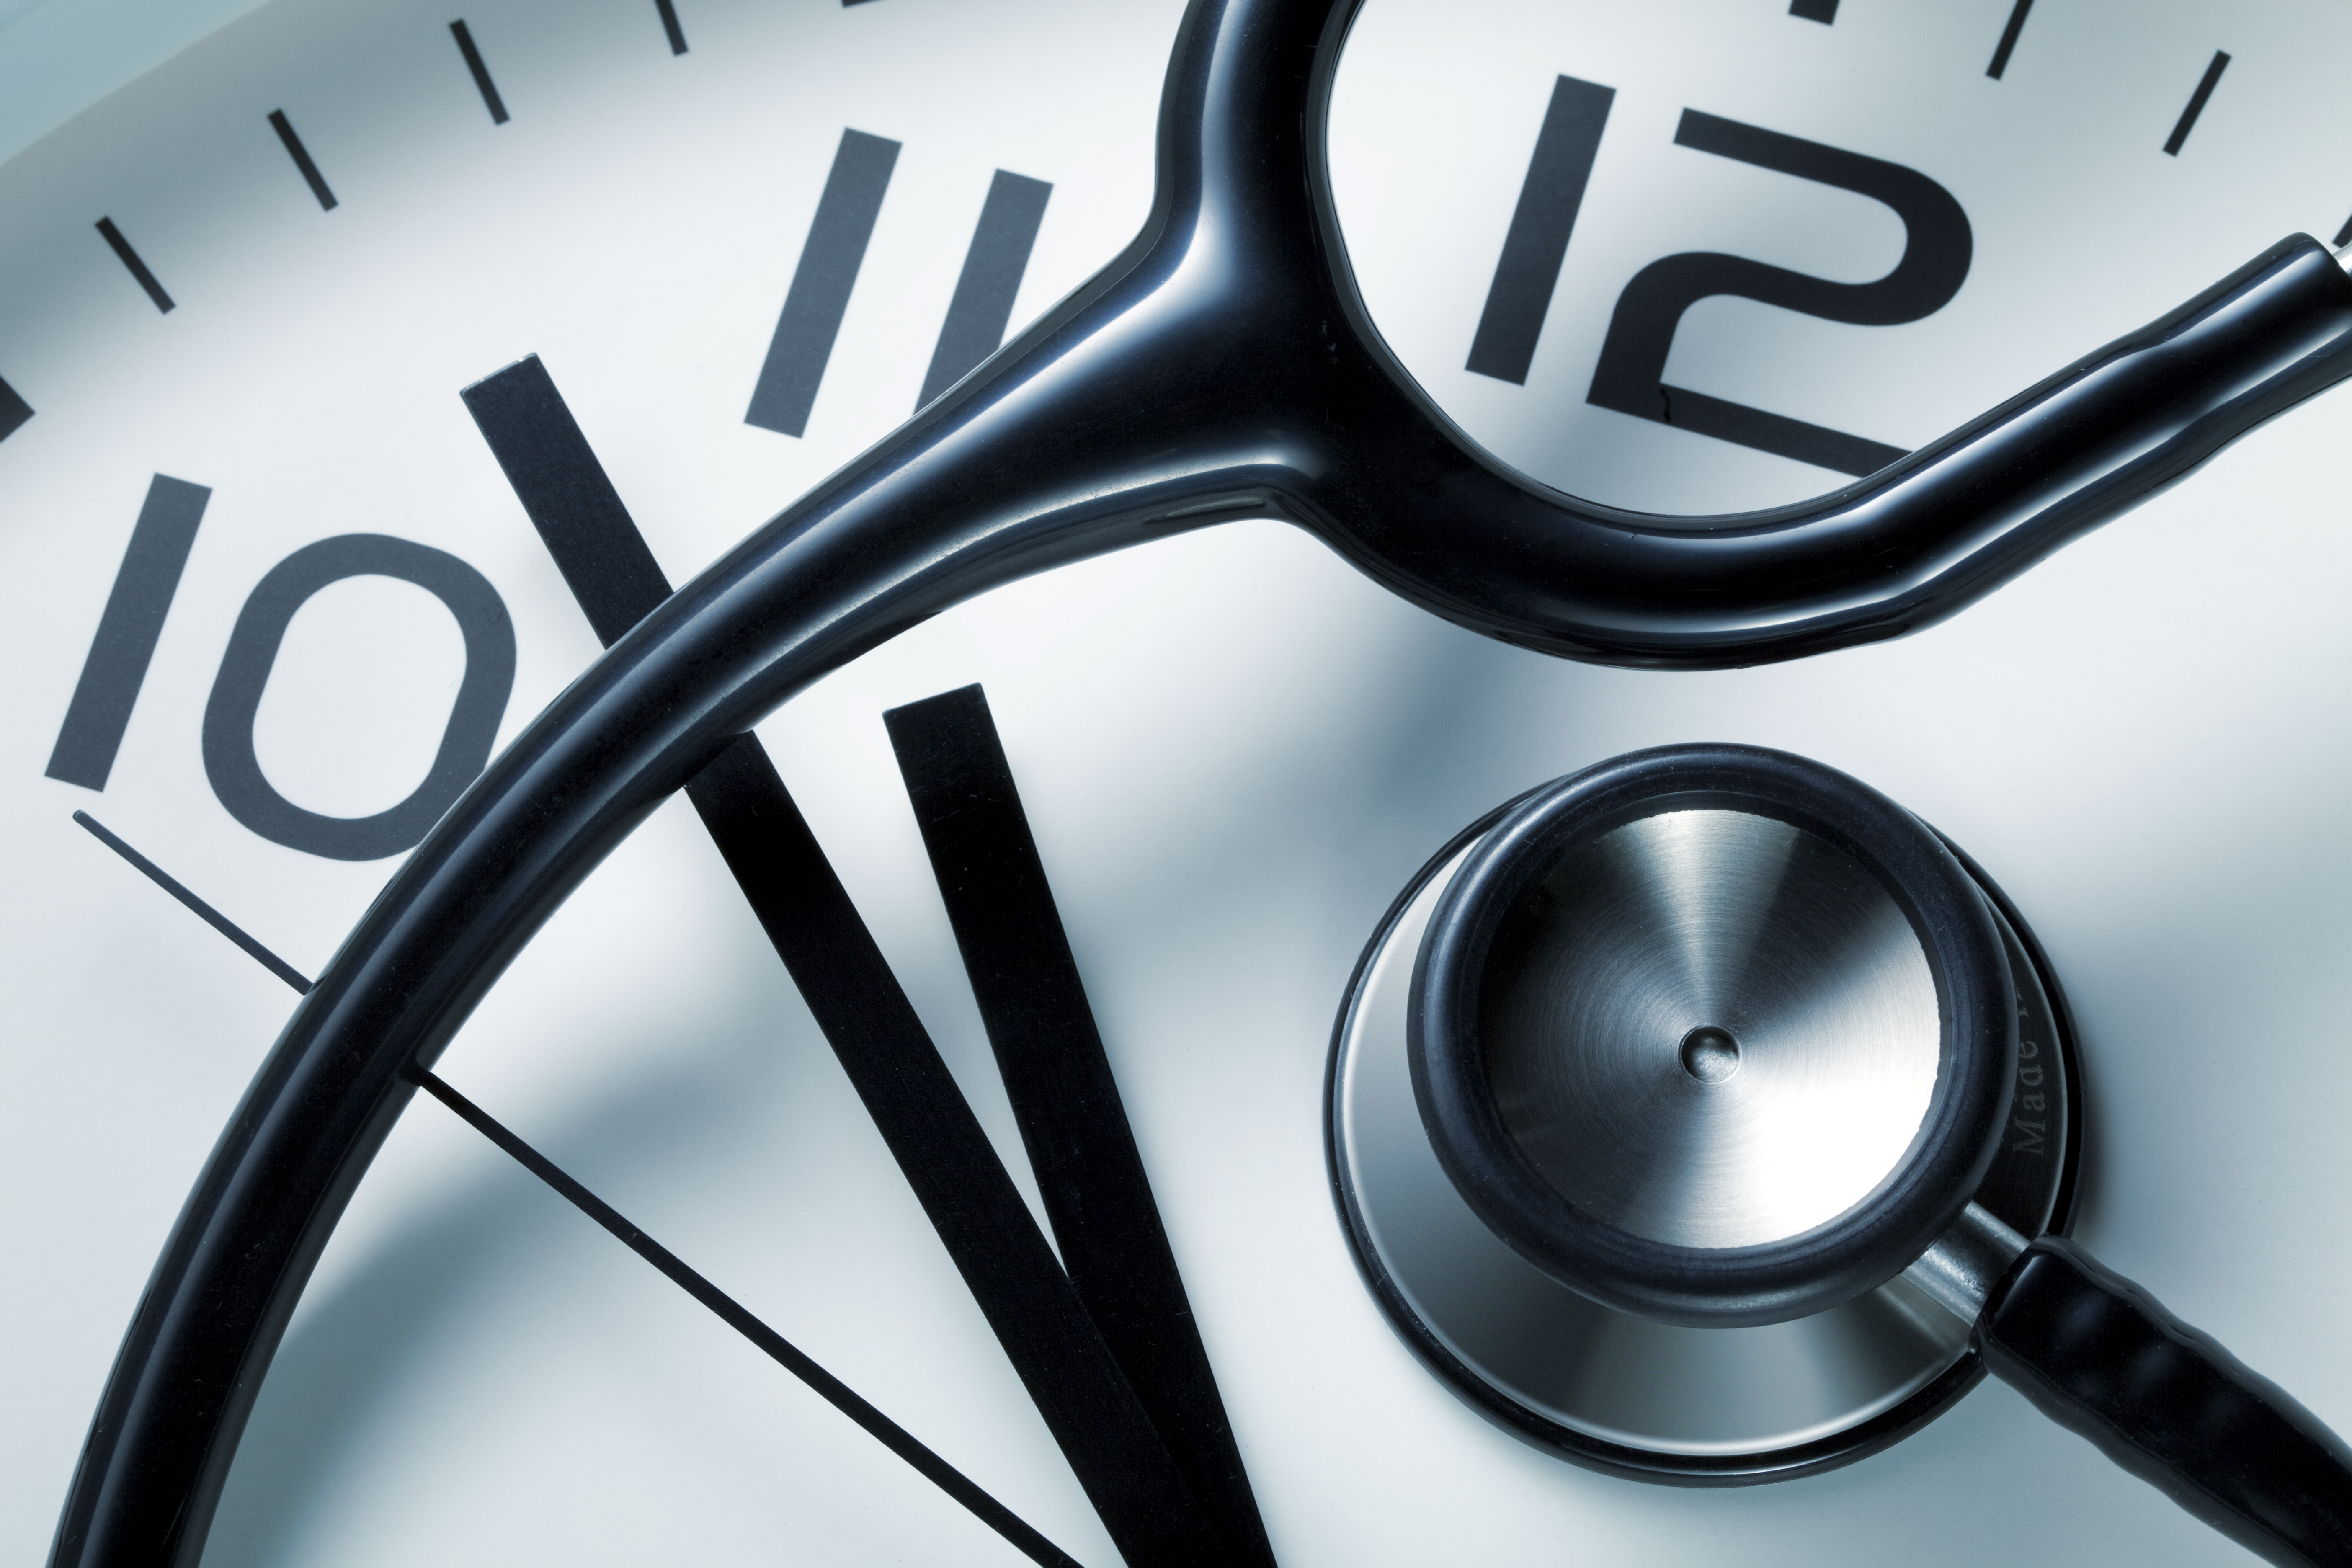 Primary care doctors spend more than 50% of workday on EHR ...